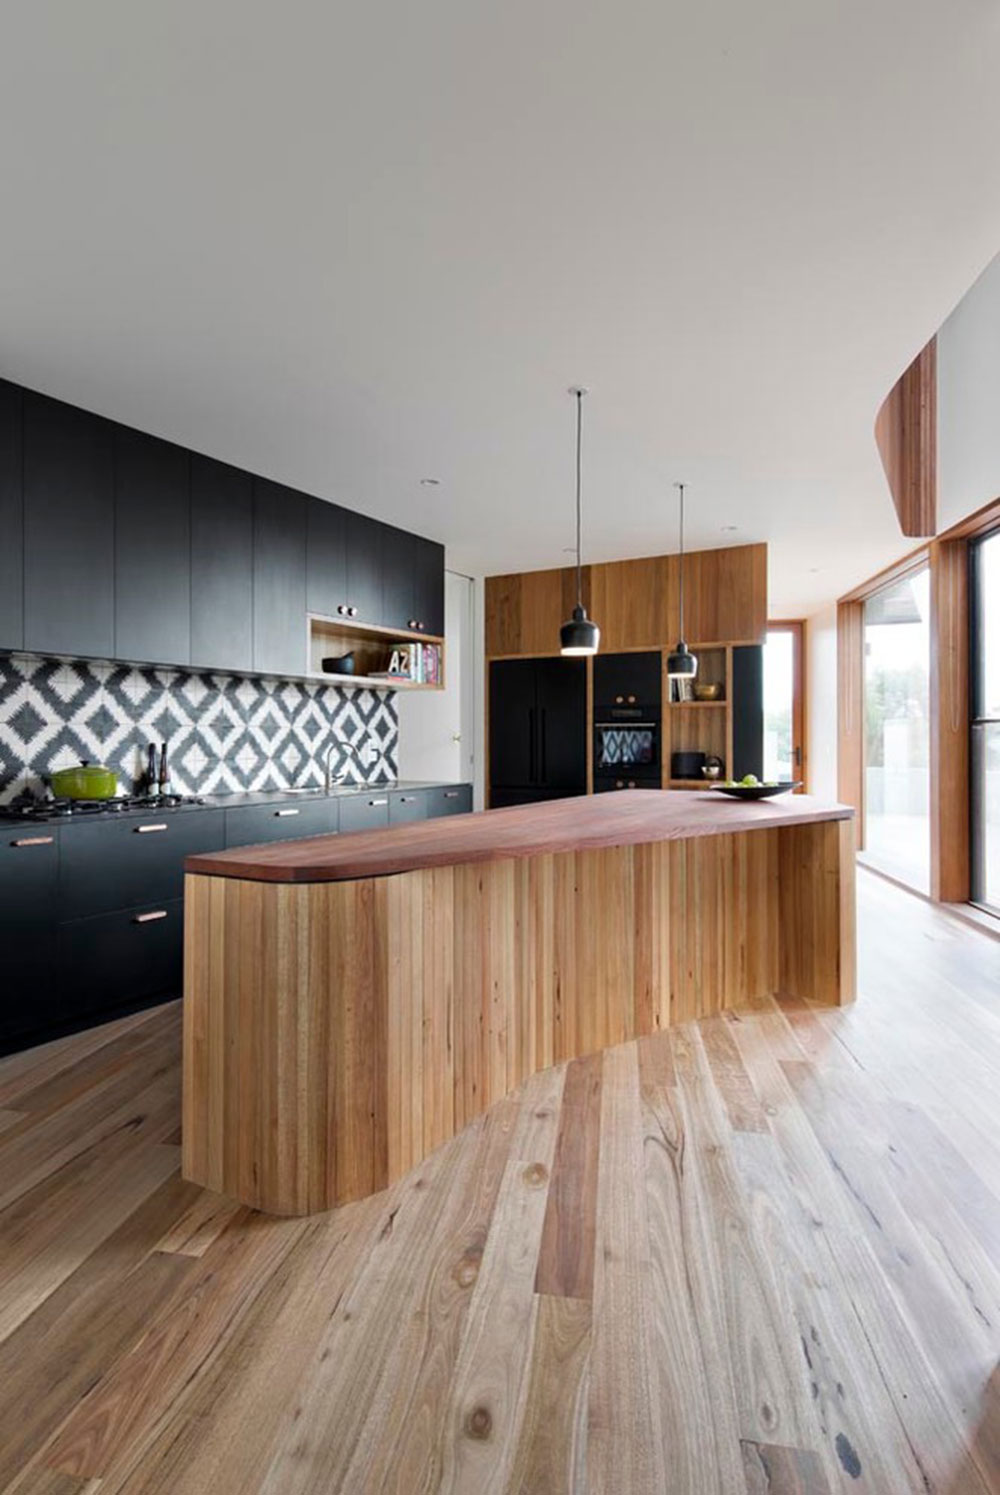 Tips for choosing tile that looks like wood tips for choosing tile that looks like wood dailygadgetfo Choice Image